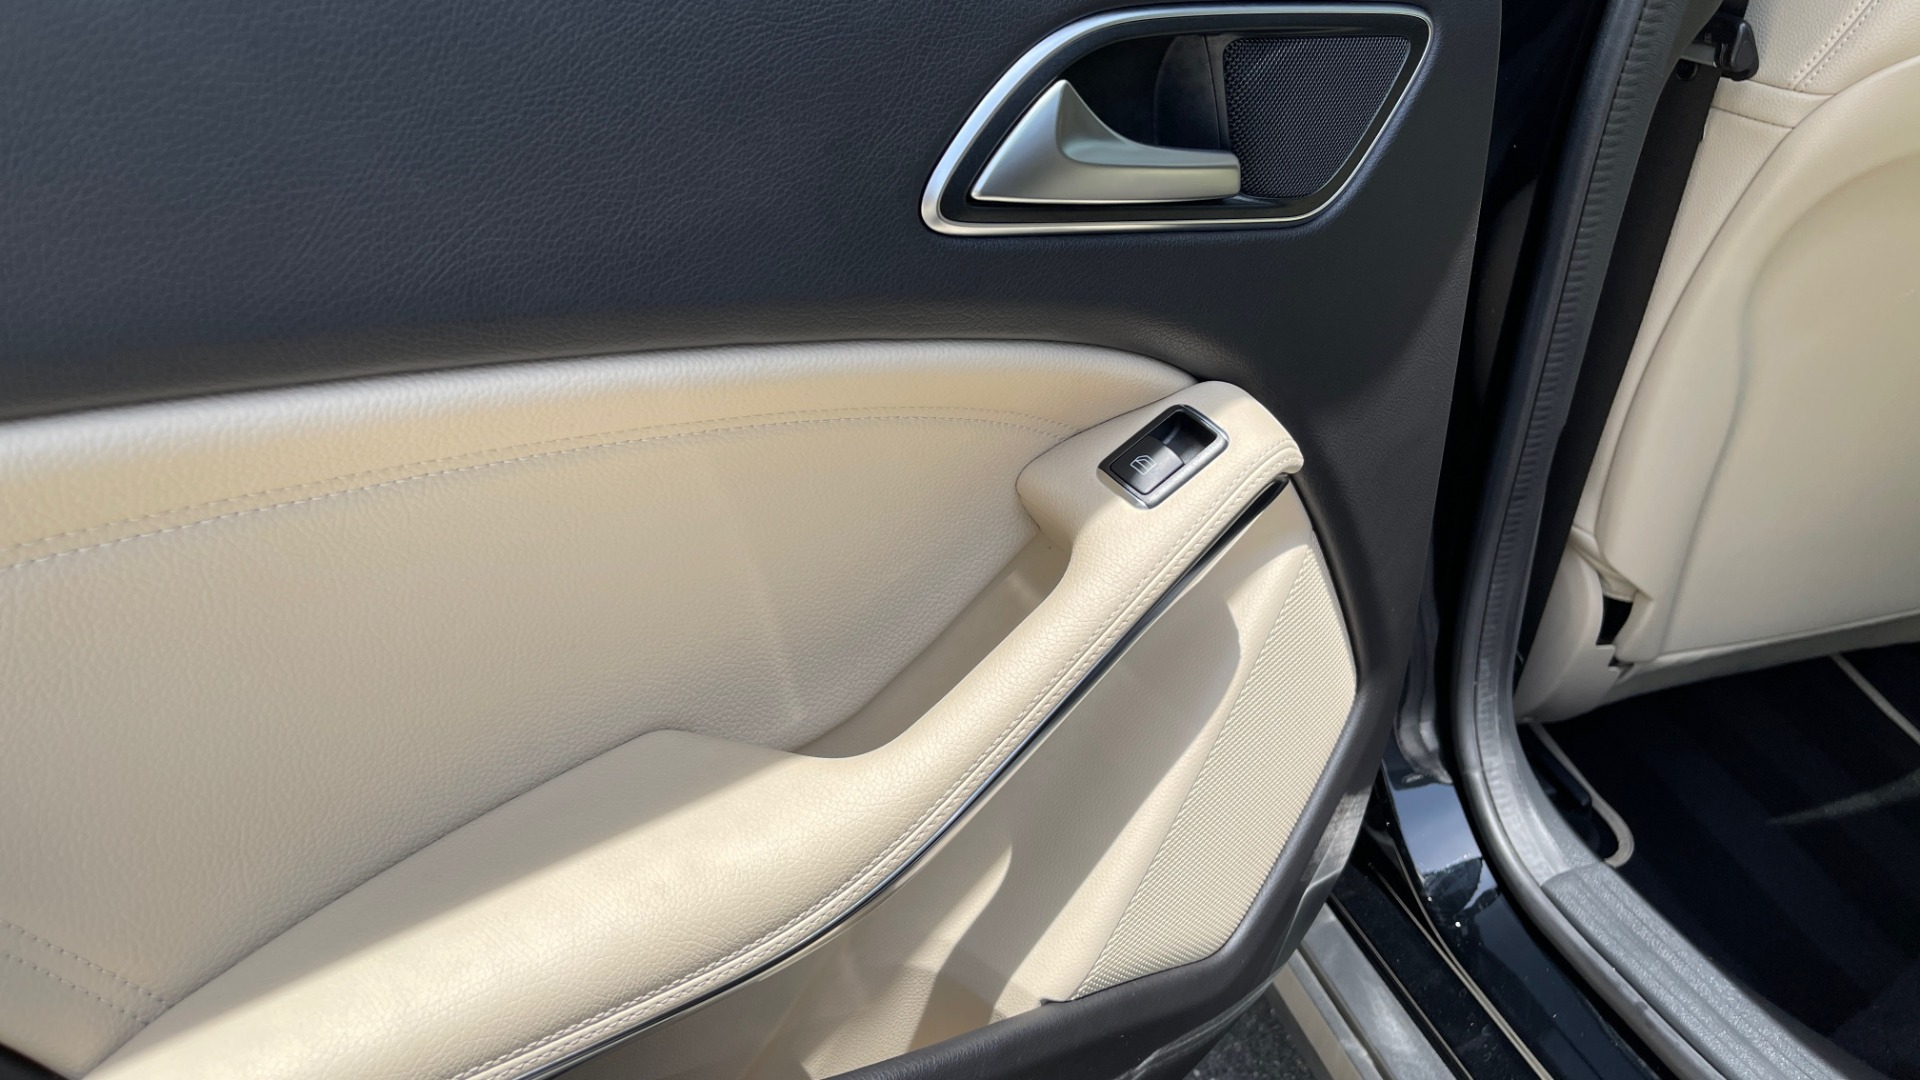 Used 2018 Mercedes-Benz GLA 250 4MATIC SUV / PANO-ROOF / HTD STS / BLIND SPOT ASST / APPLE for sale $31,995 at Formula Imports in Charlotte NC 28227 63